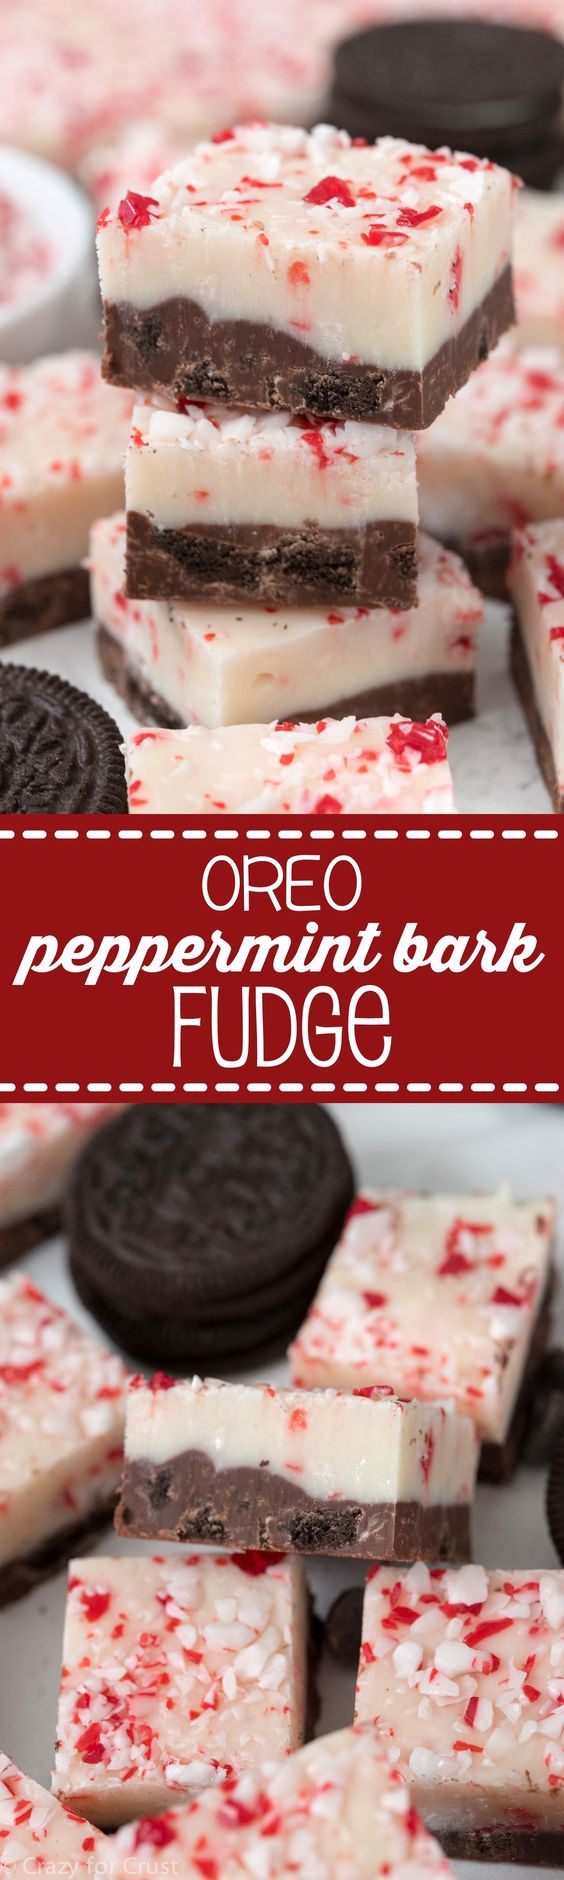 Oreo Peppermint Bark Fudge Recipe via Crazy for Crust - The BEST Christmas Cookies, Fudge, Candy, Barks and Brittles Recipes - Favorites for Holiday Treats Gift Plates and Goodies Bags!